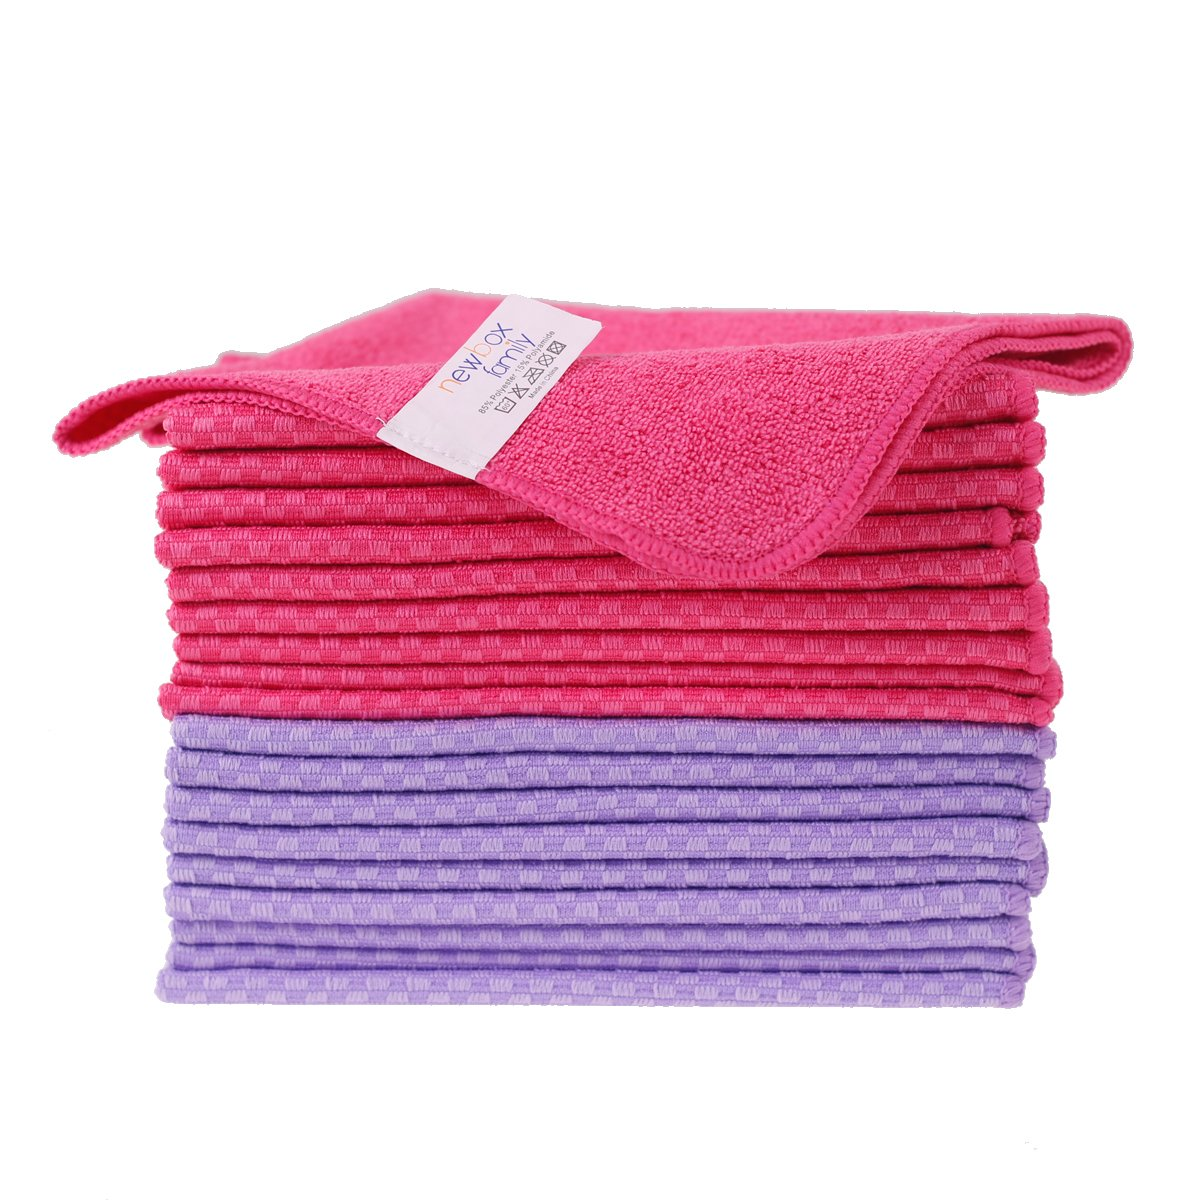 Microfiber Cloth - 24 Pack for Kitchen best Appliance Auto microfiber Cleaning cloth